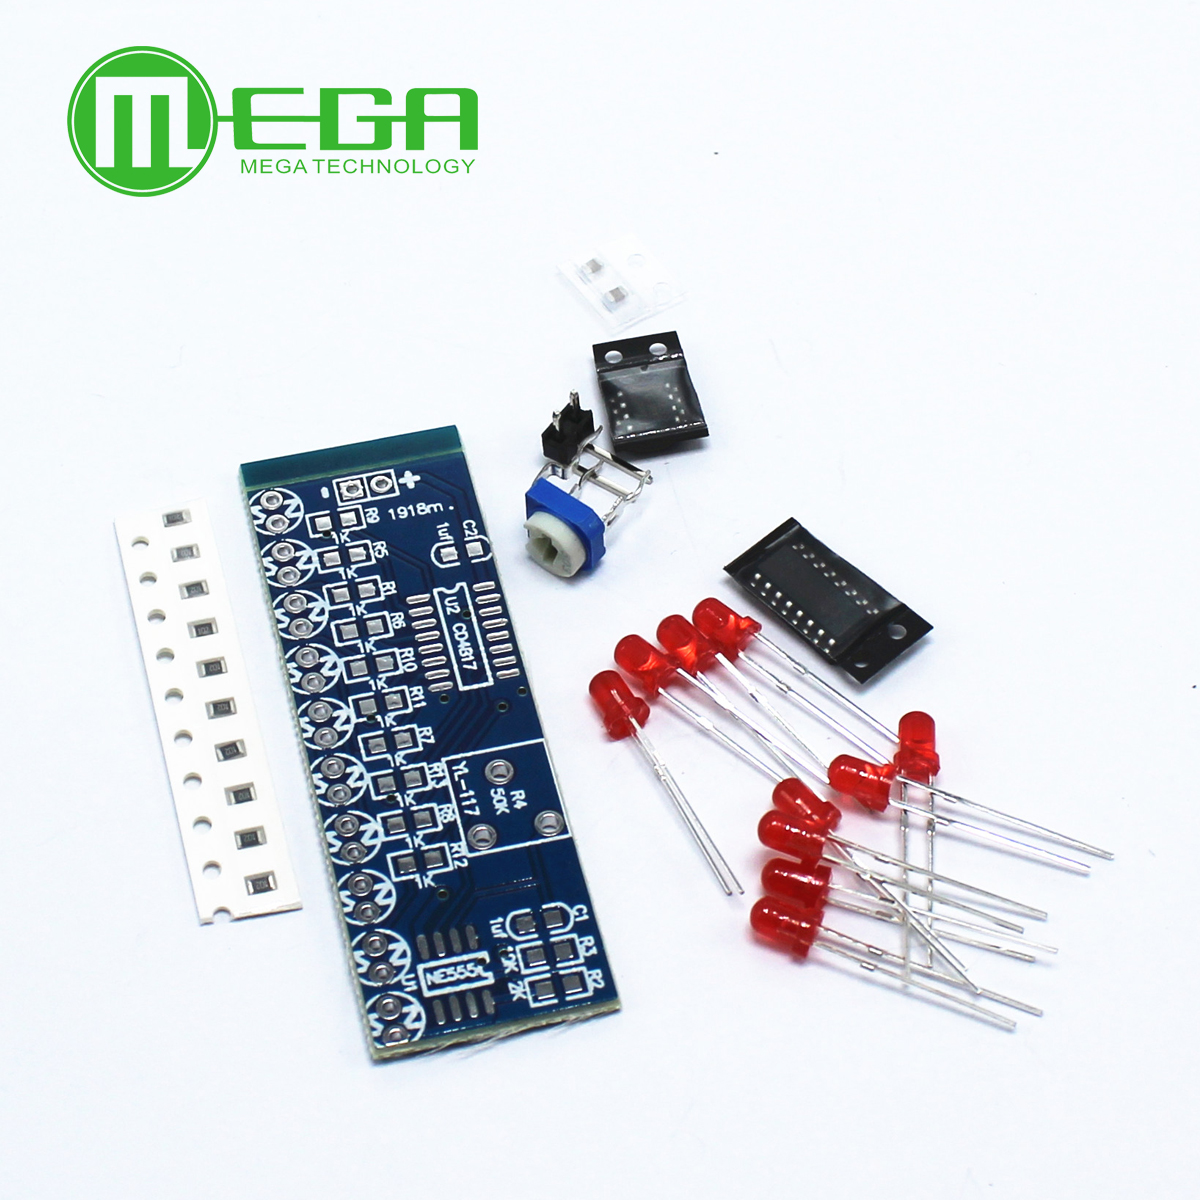 Ne555 Cd4017 Running Led Flow Light Electronic Production Suite Board Diy Kit Module Capacitor Control Oscillator Clock Siganal Electronic Components & Supplies